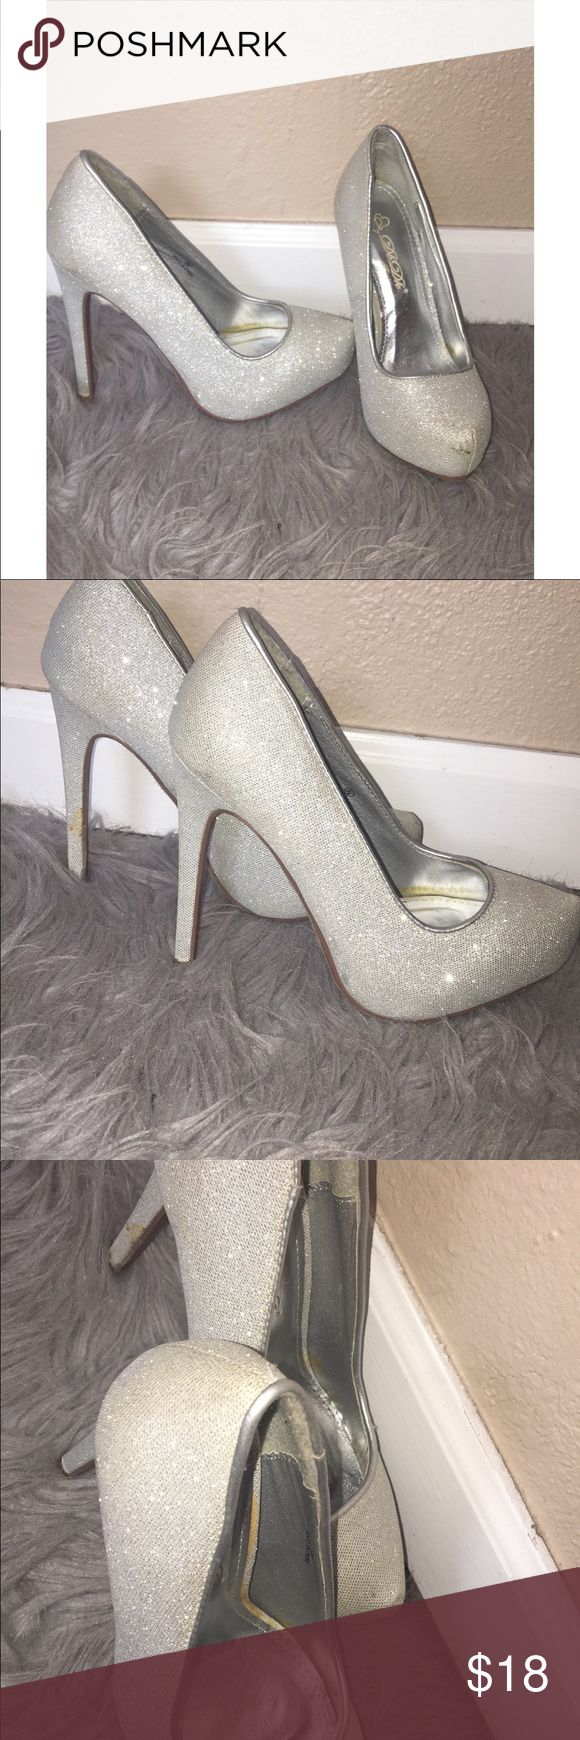 Silver sparkly heels! Wore them once for prom. 🥀 Silver sparkly heels! Worn once. 🌹 they were stored for a while so the inside has a little bit of yellowing. Perfect for any special occasion. Size 6 1/2 Shoes Heels